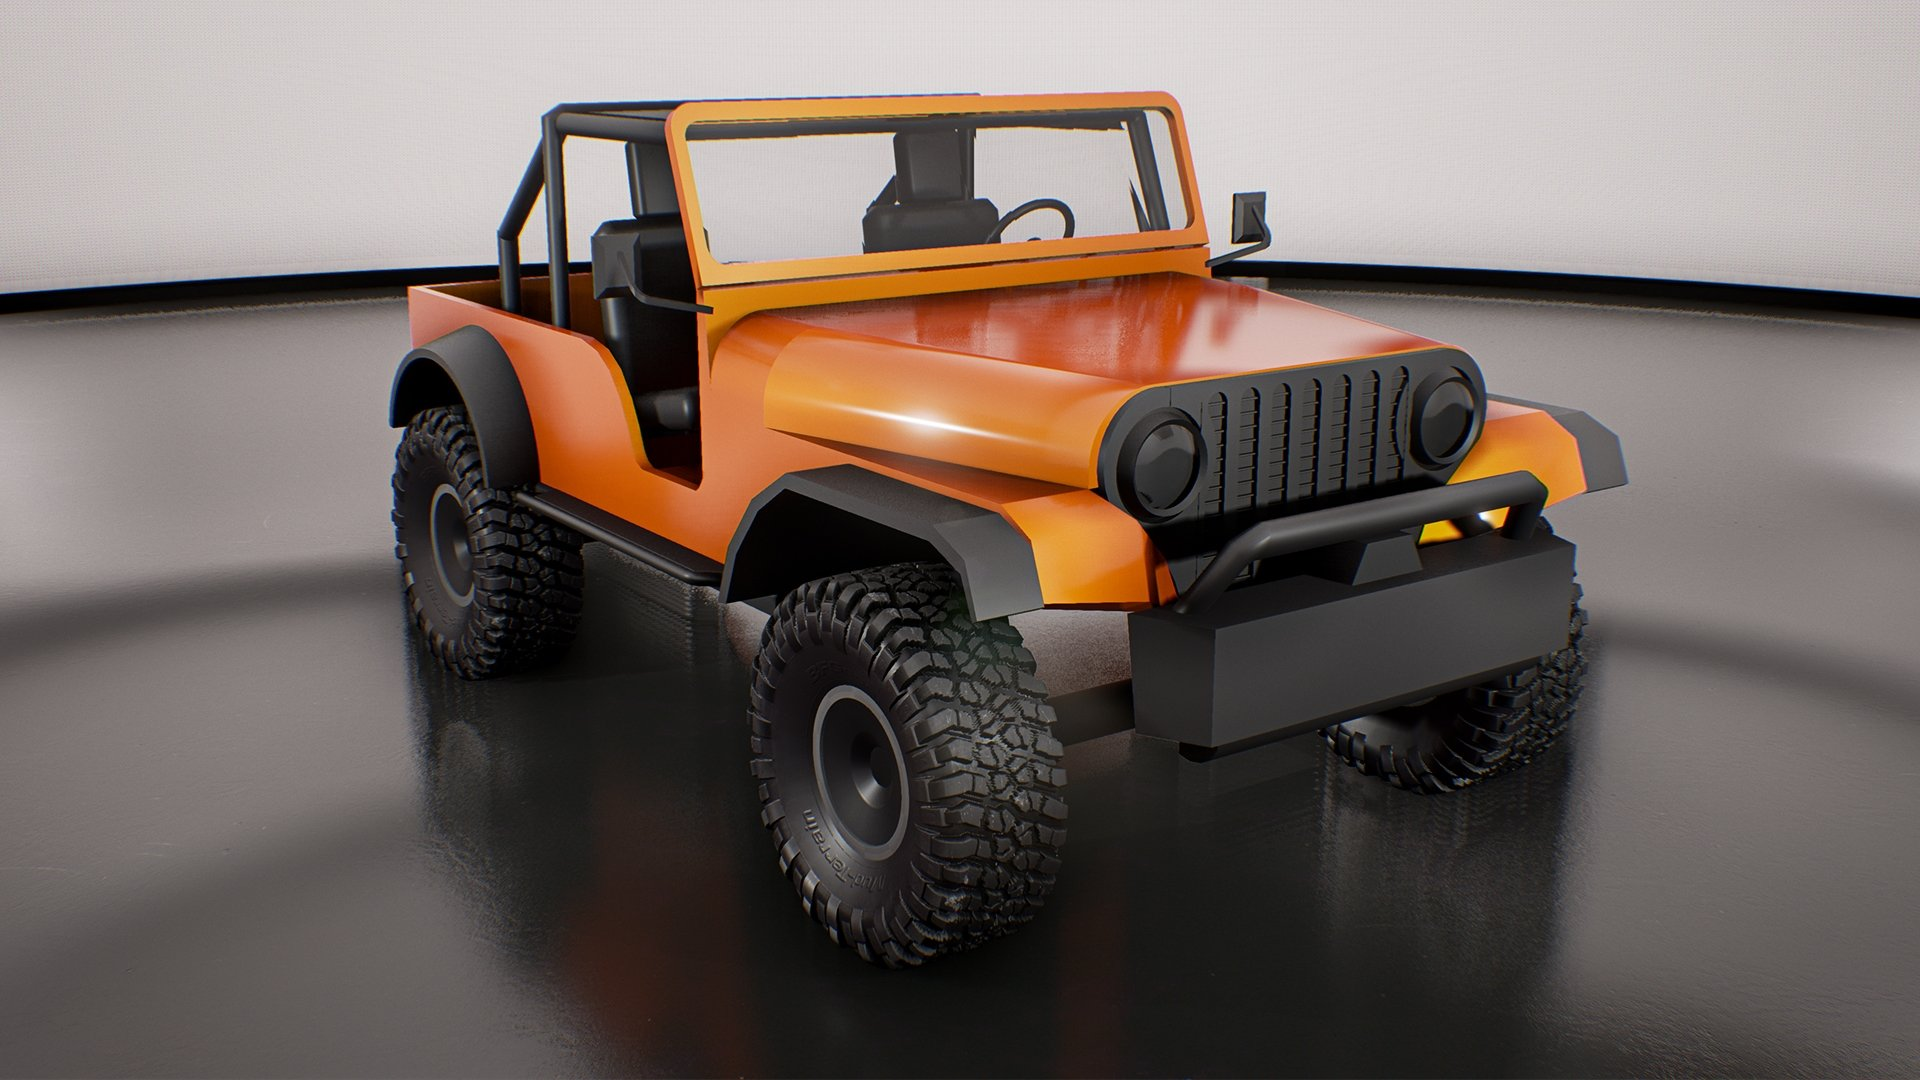 Jeep Cj66 Unreal Engine 4 Custom Normals Substance